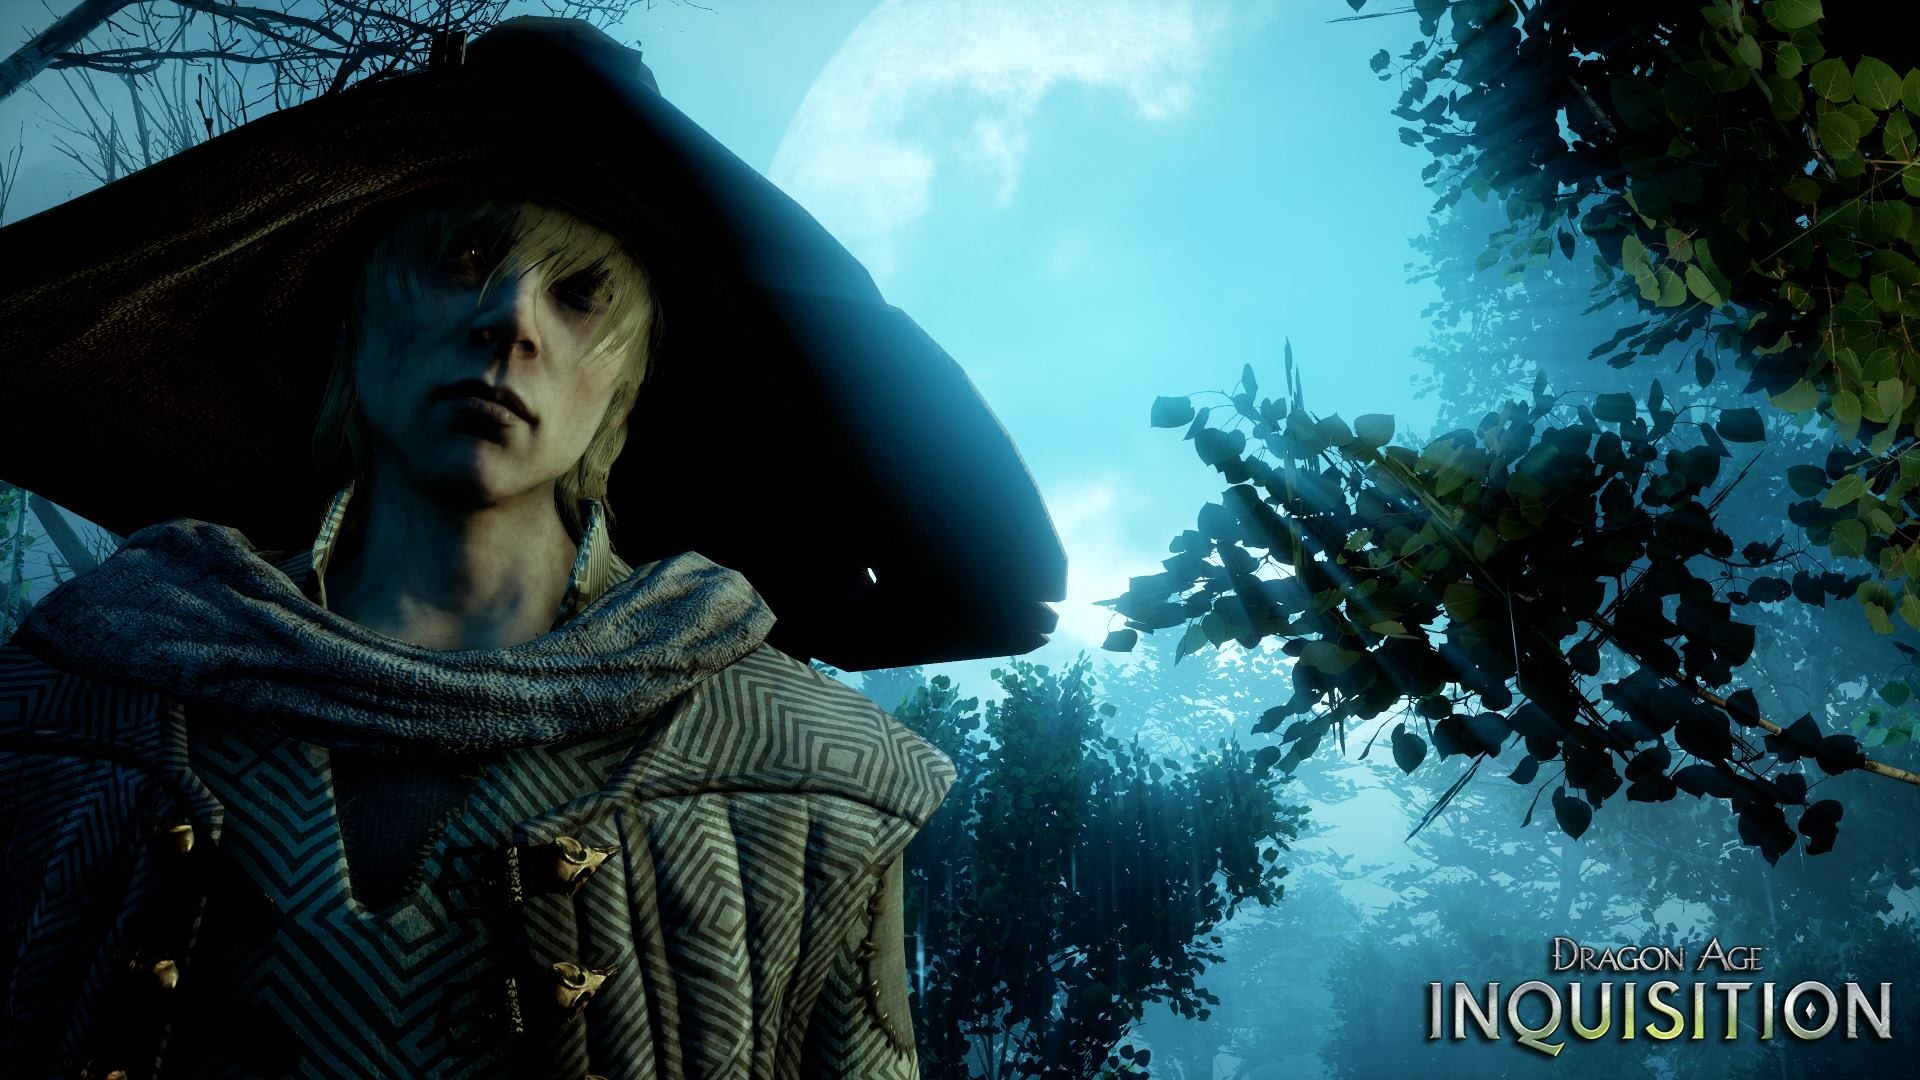 Dragon Age Inquisition Wallpapers Top Free Dragon Age